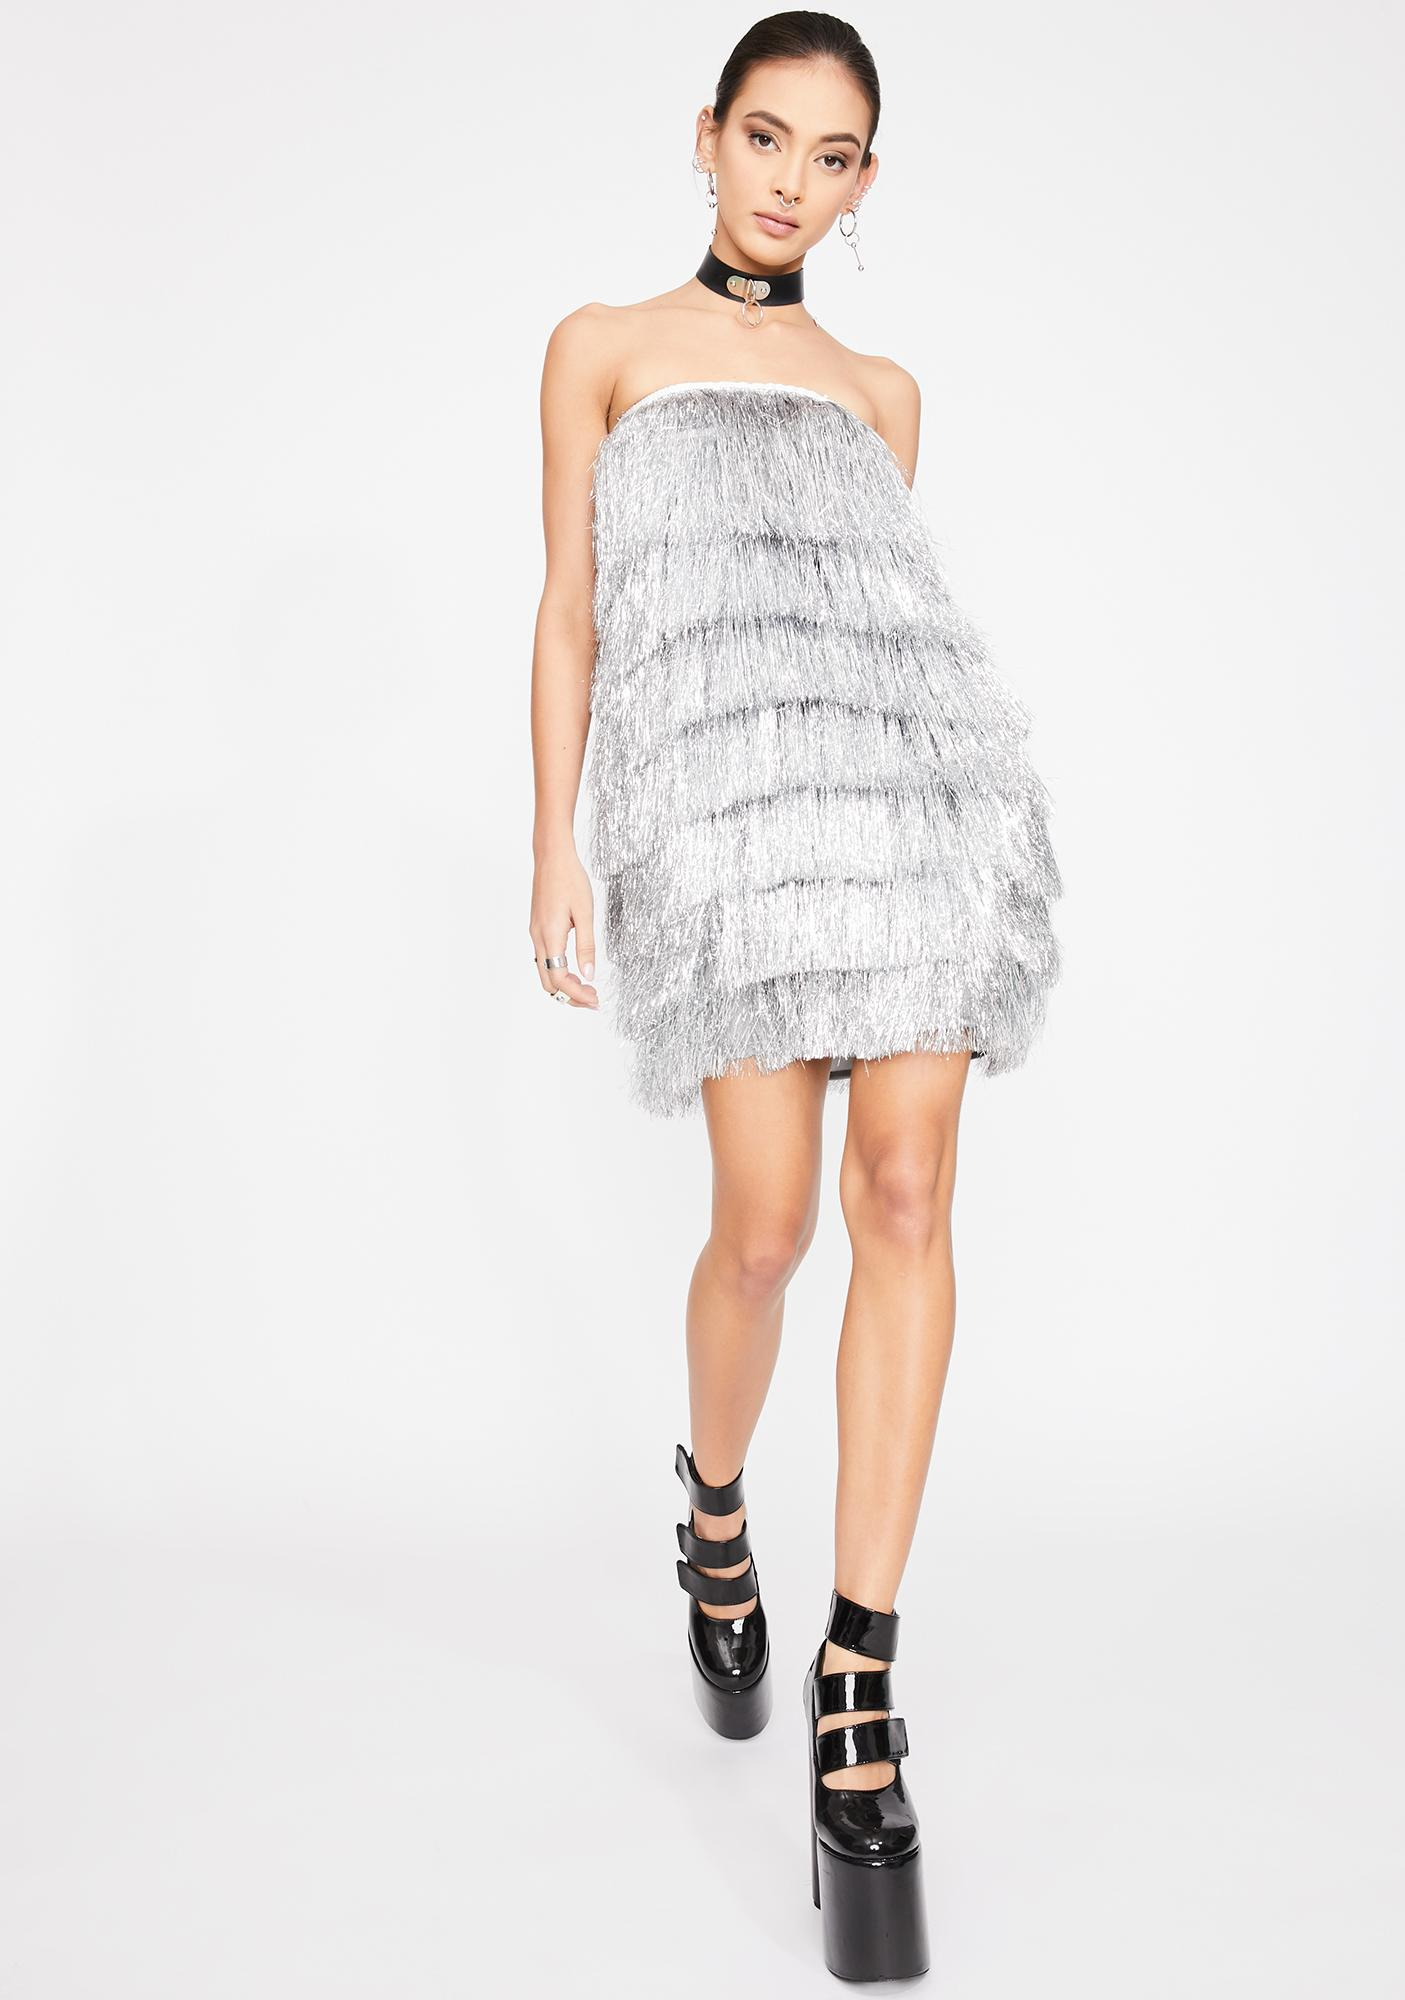 Kiki Riki Flash Dance Fringe Dress